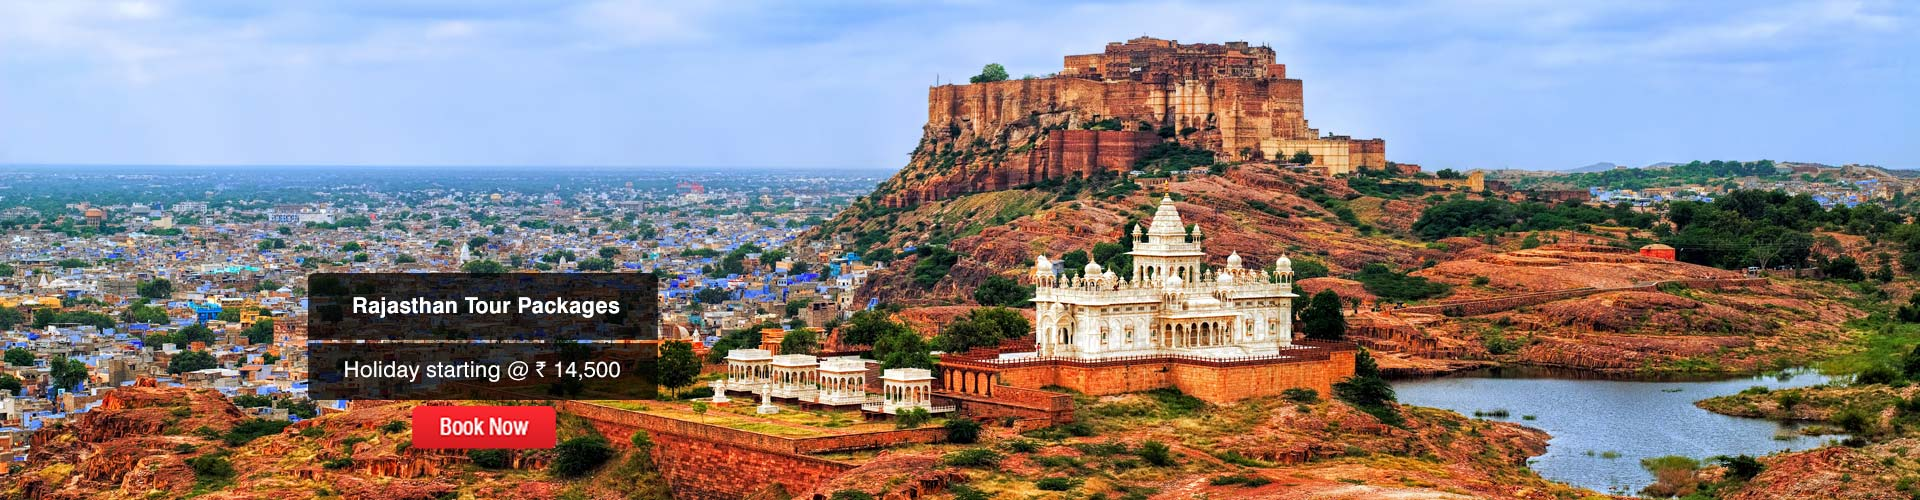 India Holiday Packages Book India Tour Packages At Best Price Sotc